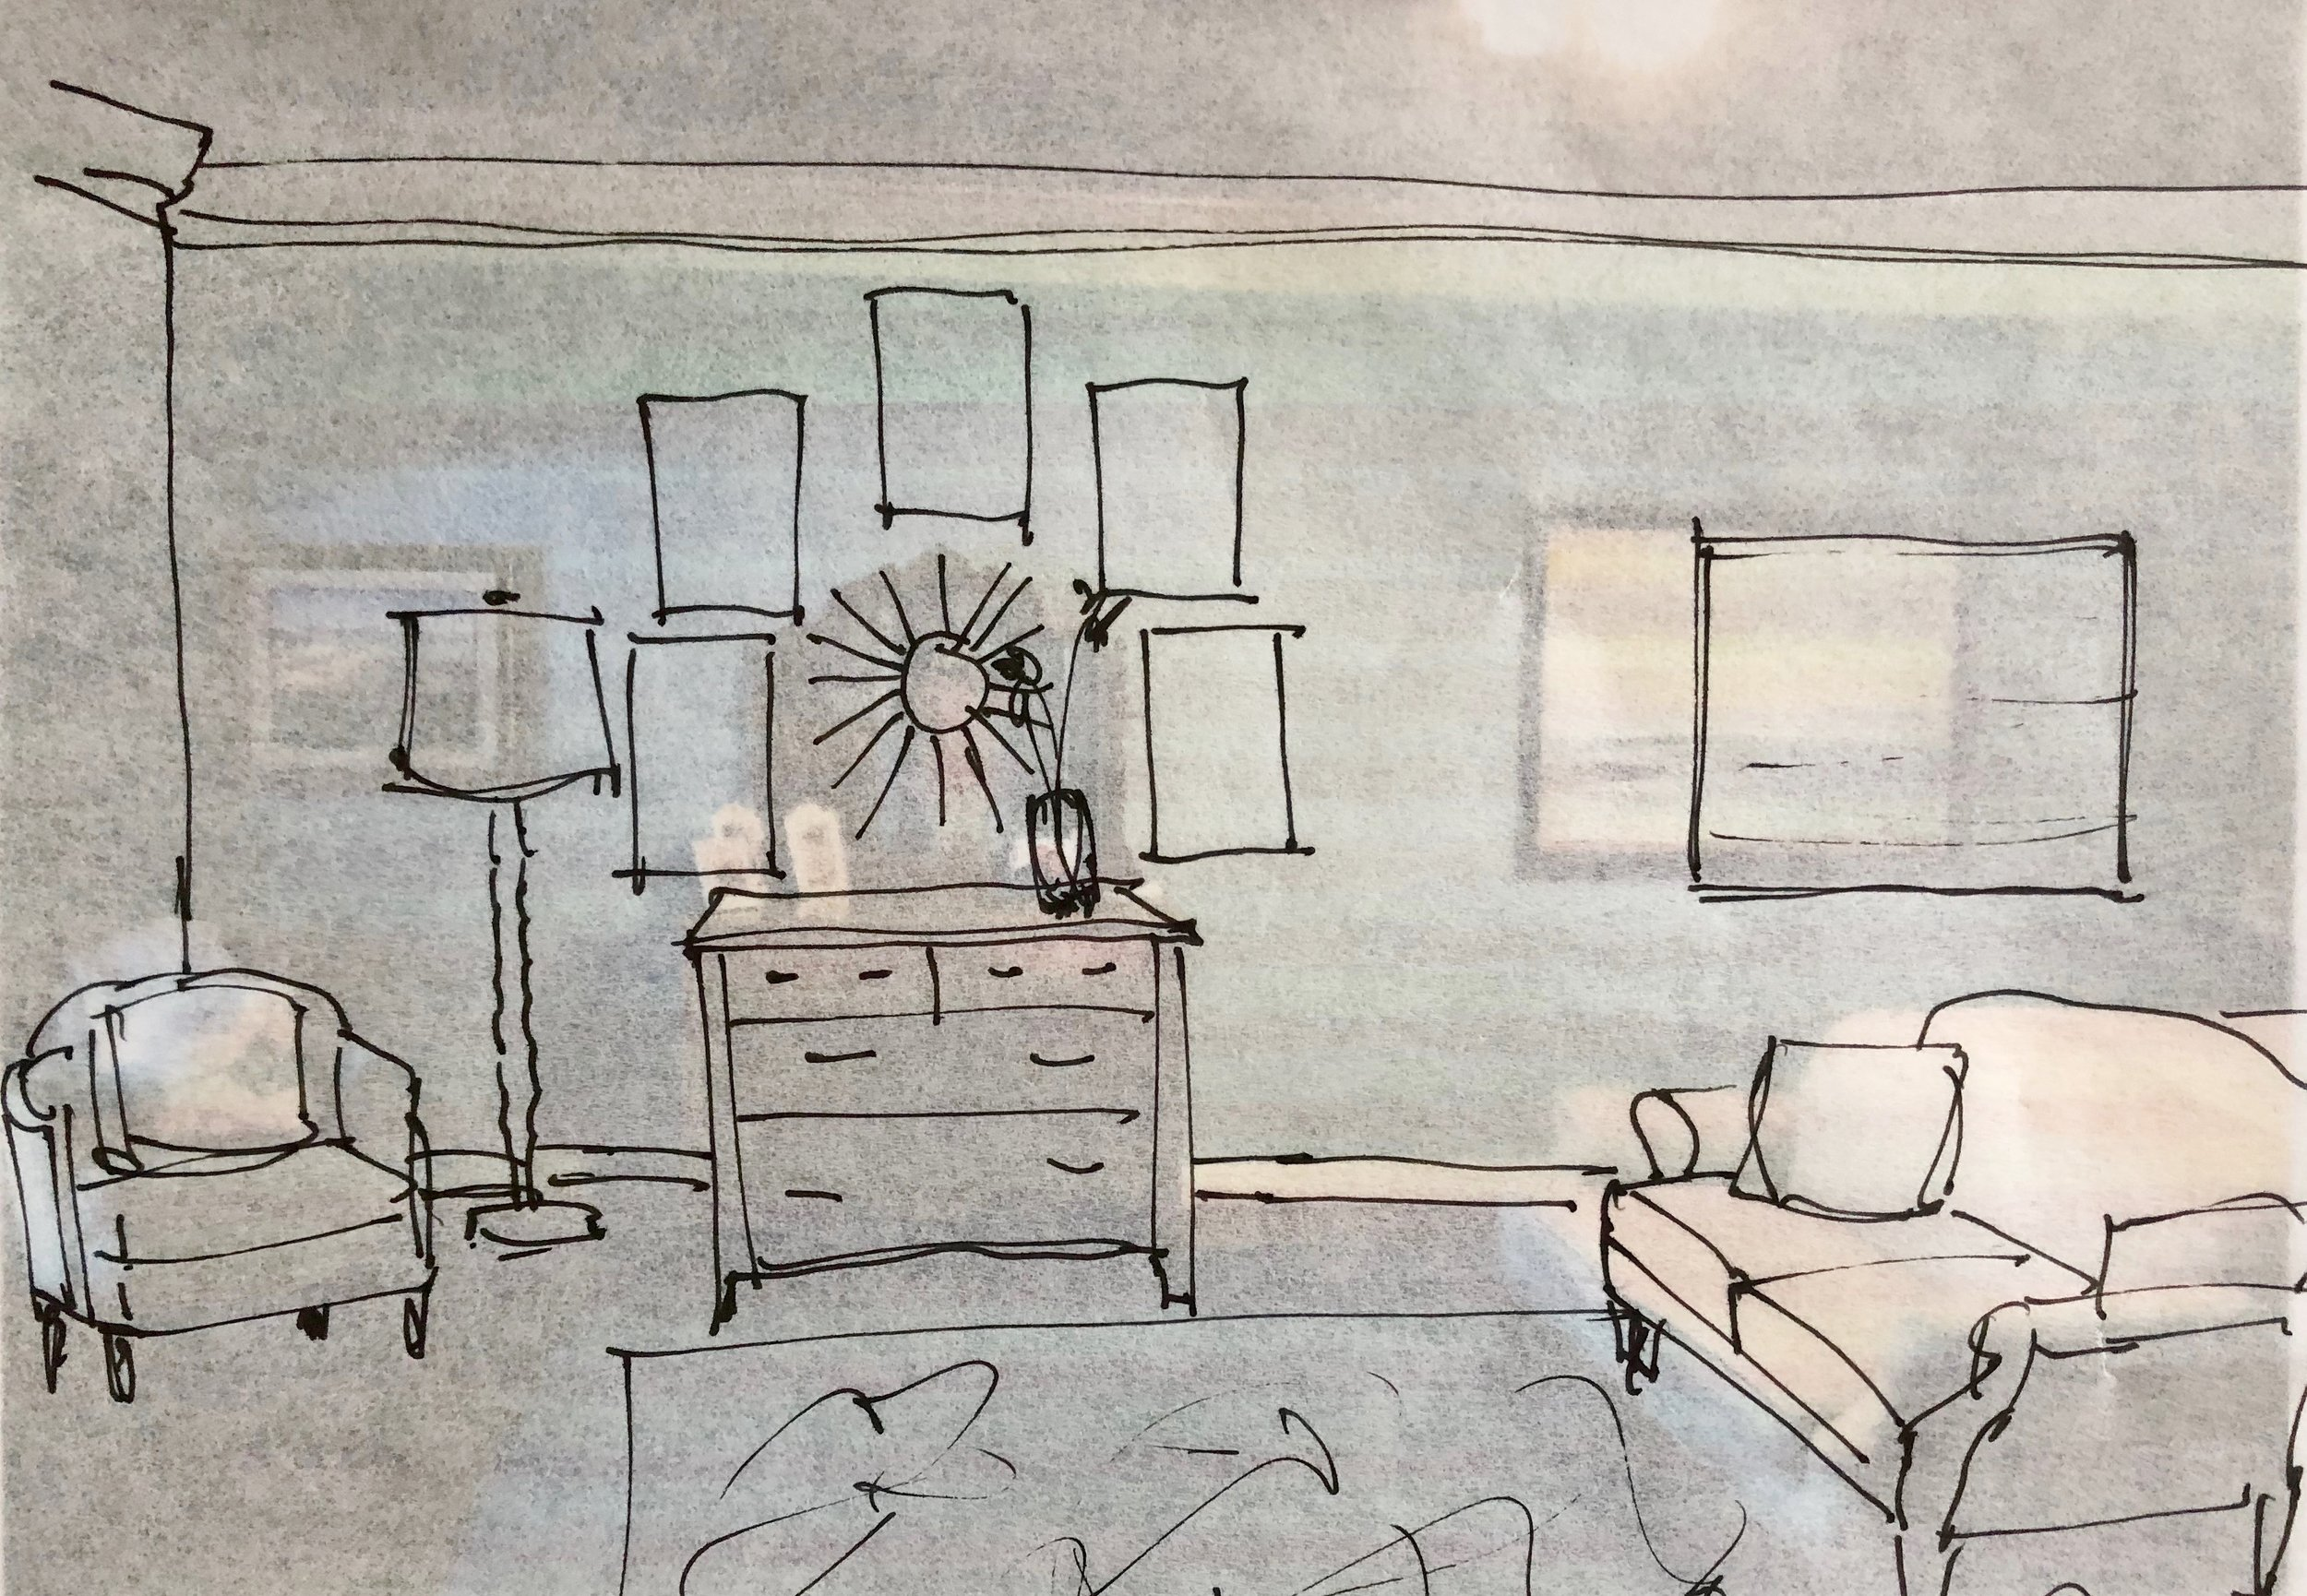 Here's my quick sketch for the dresser wall with the new wall decor layout and floor lamp. The large art piece shifted down the wall slightly away from this grouping and would be reframed in a slim, silver/gilded type simple frame to soften the look. Designed in a Click Q&A Consultation - Carla Aston